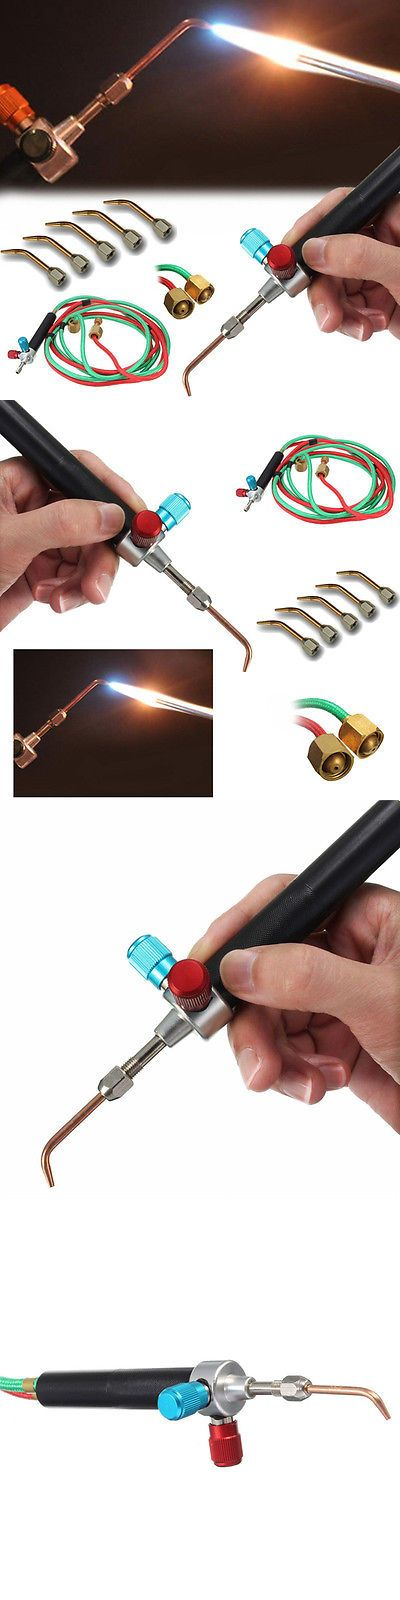 Soldering Tools and Accessories 179261: Smith New Top Gas Welding Soldering Little Torch With 5 Interchangeable Tips -> BUY IT NOW ONLY: $38.95 on eBay!